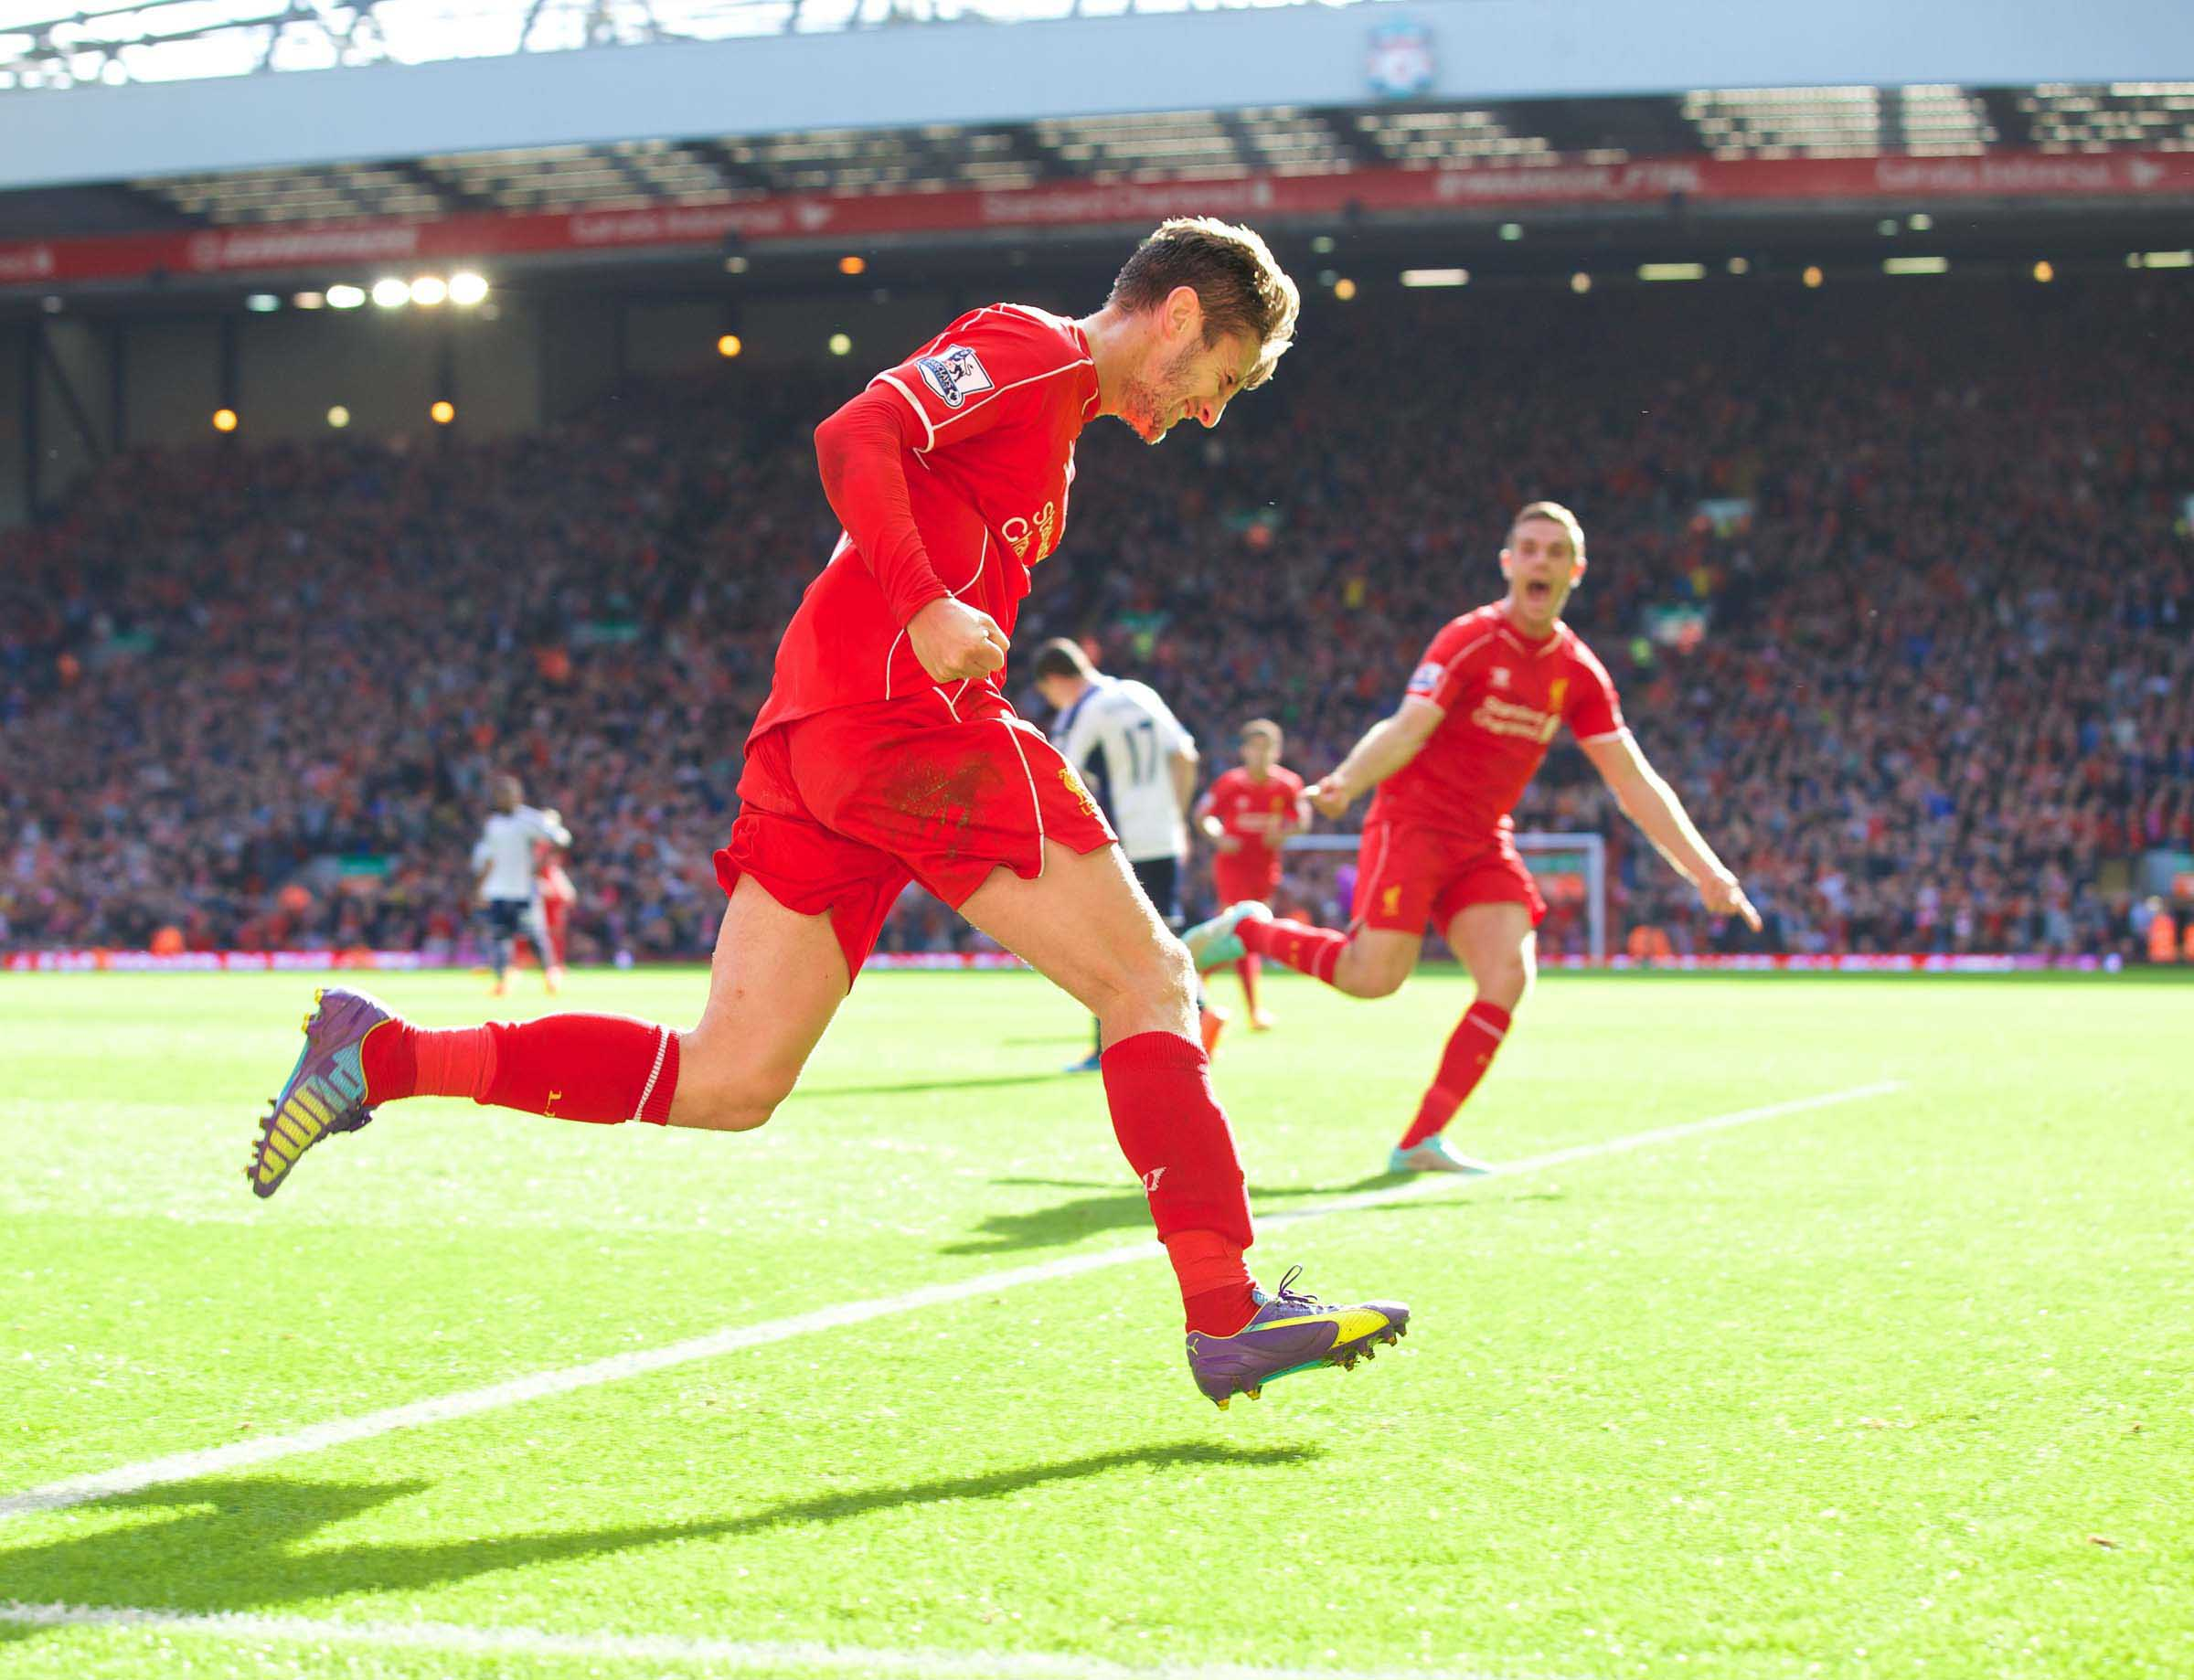 Football - FA Premier League - Liverpool FC v West Bromwich Albion FC